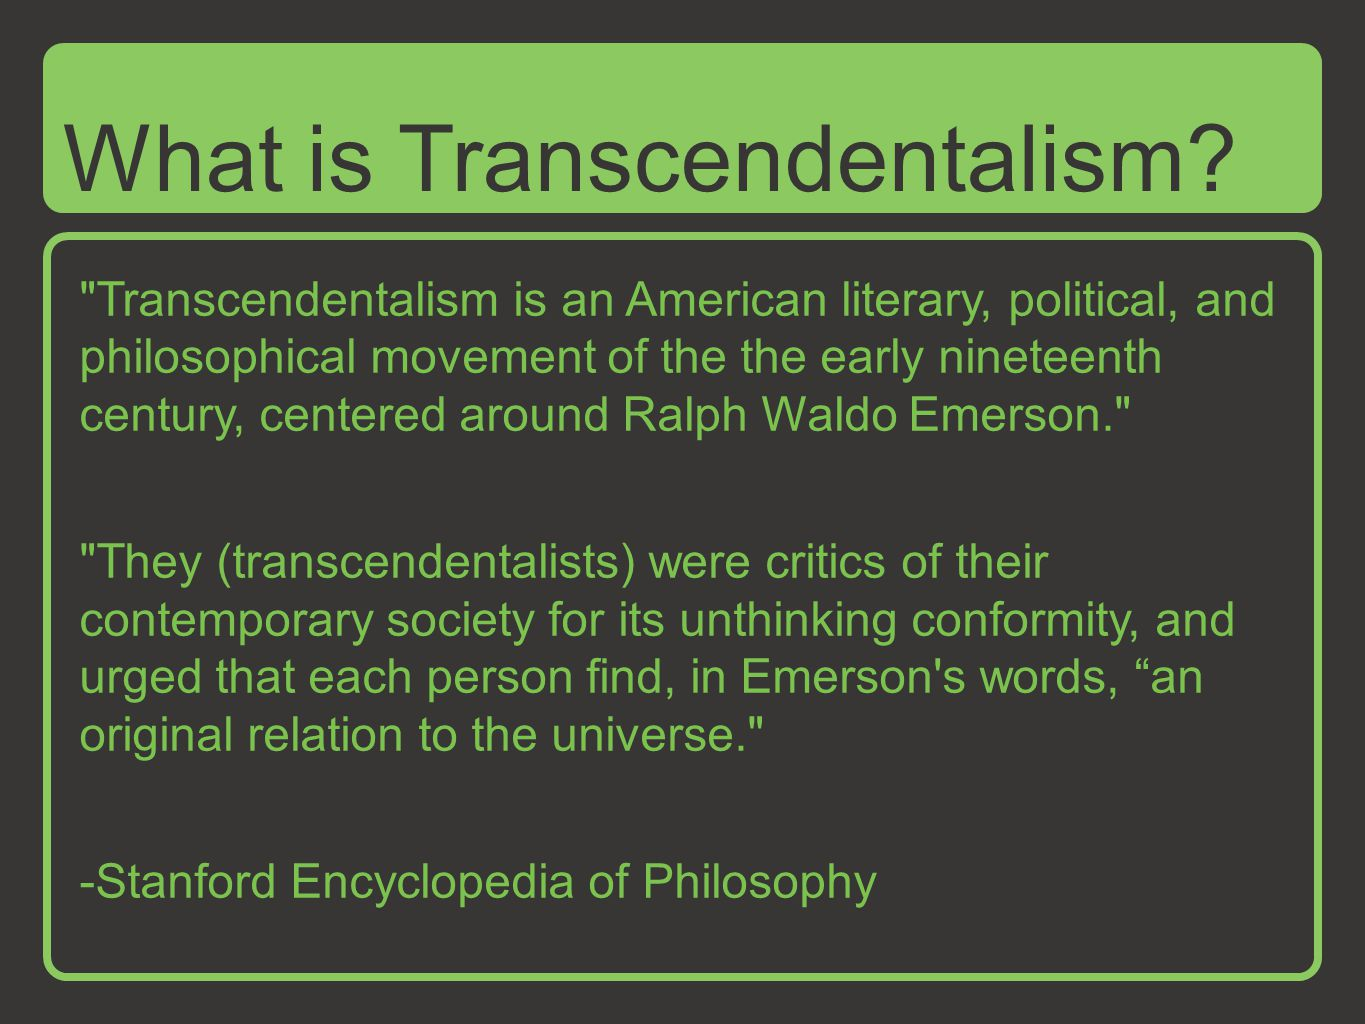 Transcendentalism is an American literary, political, and philosophical movement of the the early nineteenth century, centered around Ralph Waldo Emerson. They (transcendentalists) were critics of their contemporary society for its unthinking conformity, and urged that each person find, in Emerson s words, an original relation to the universe. -Stanford Encyclopedia of Philosophy What is Transcendentalism?